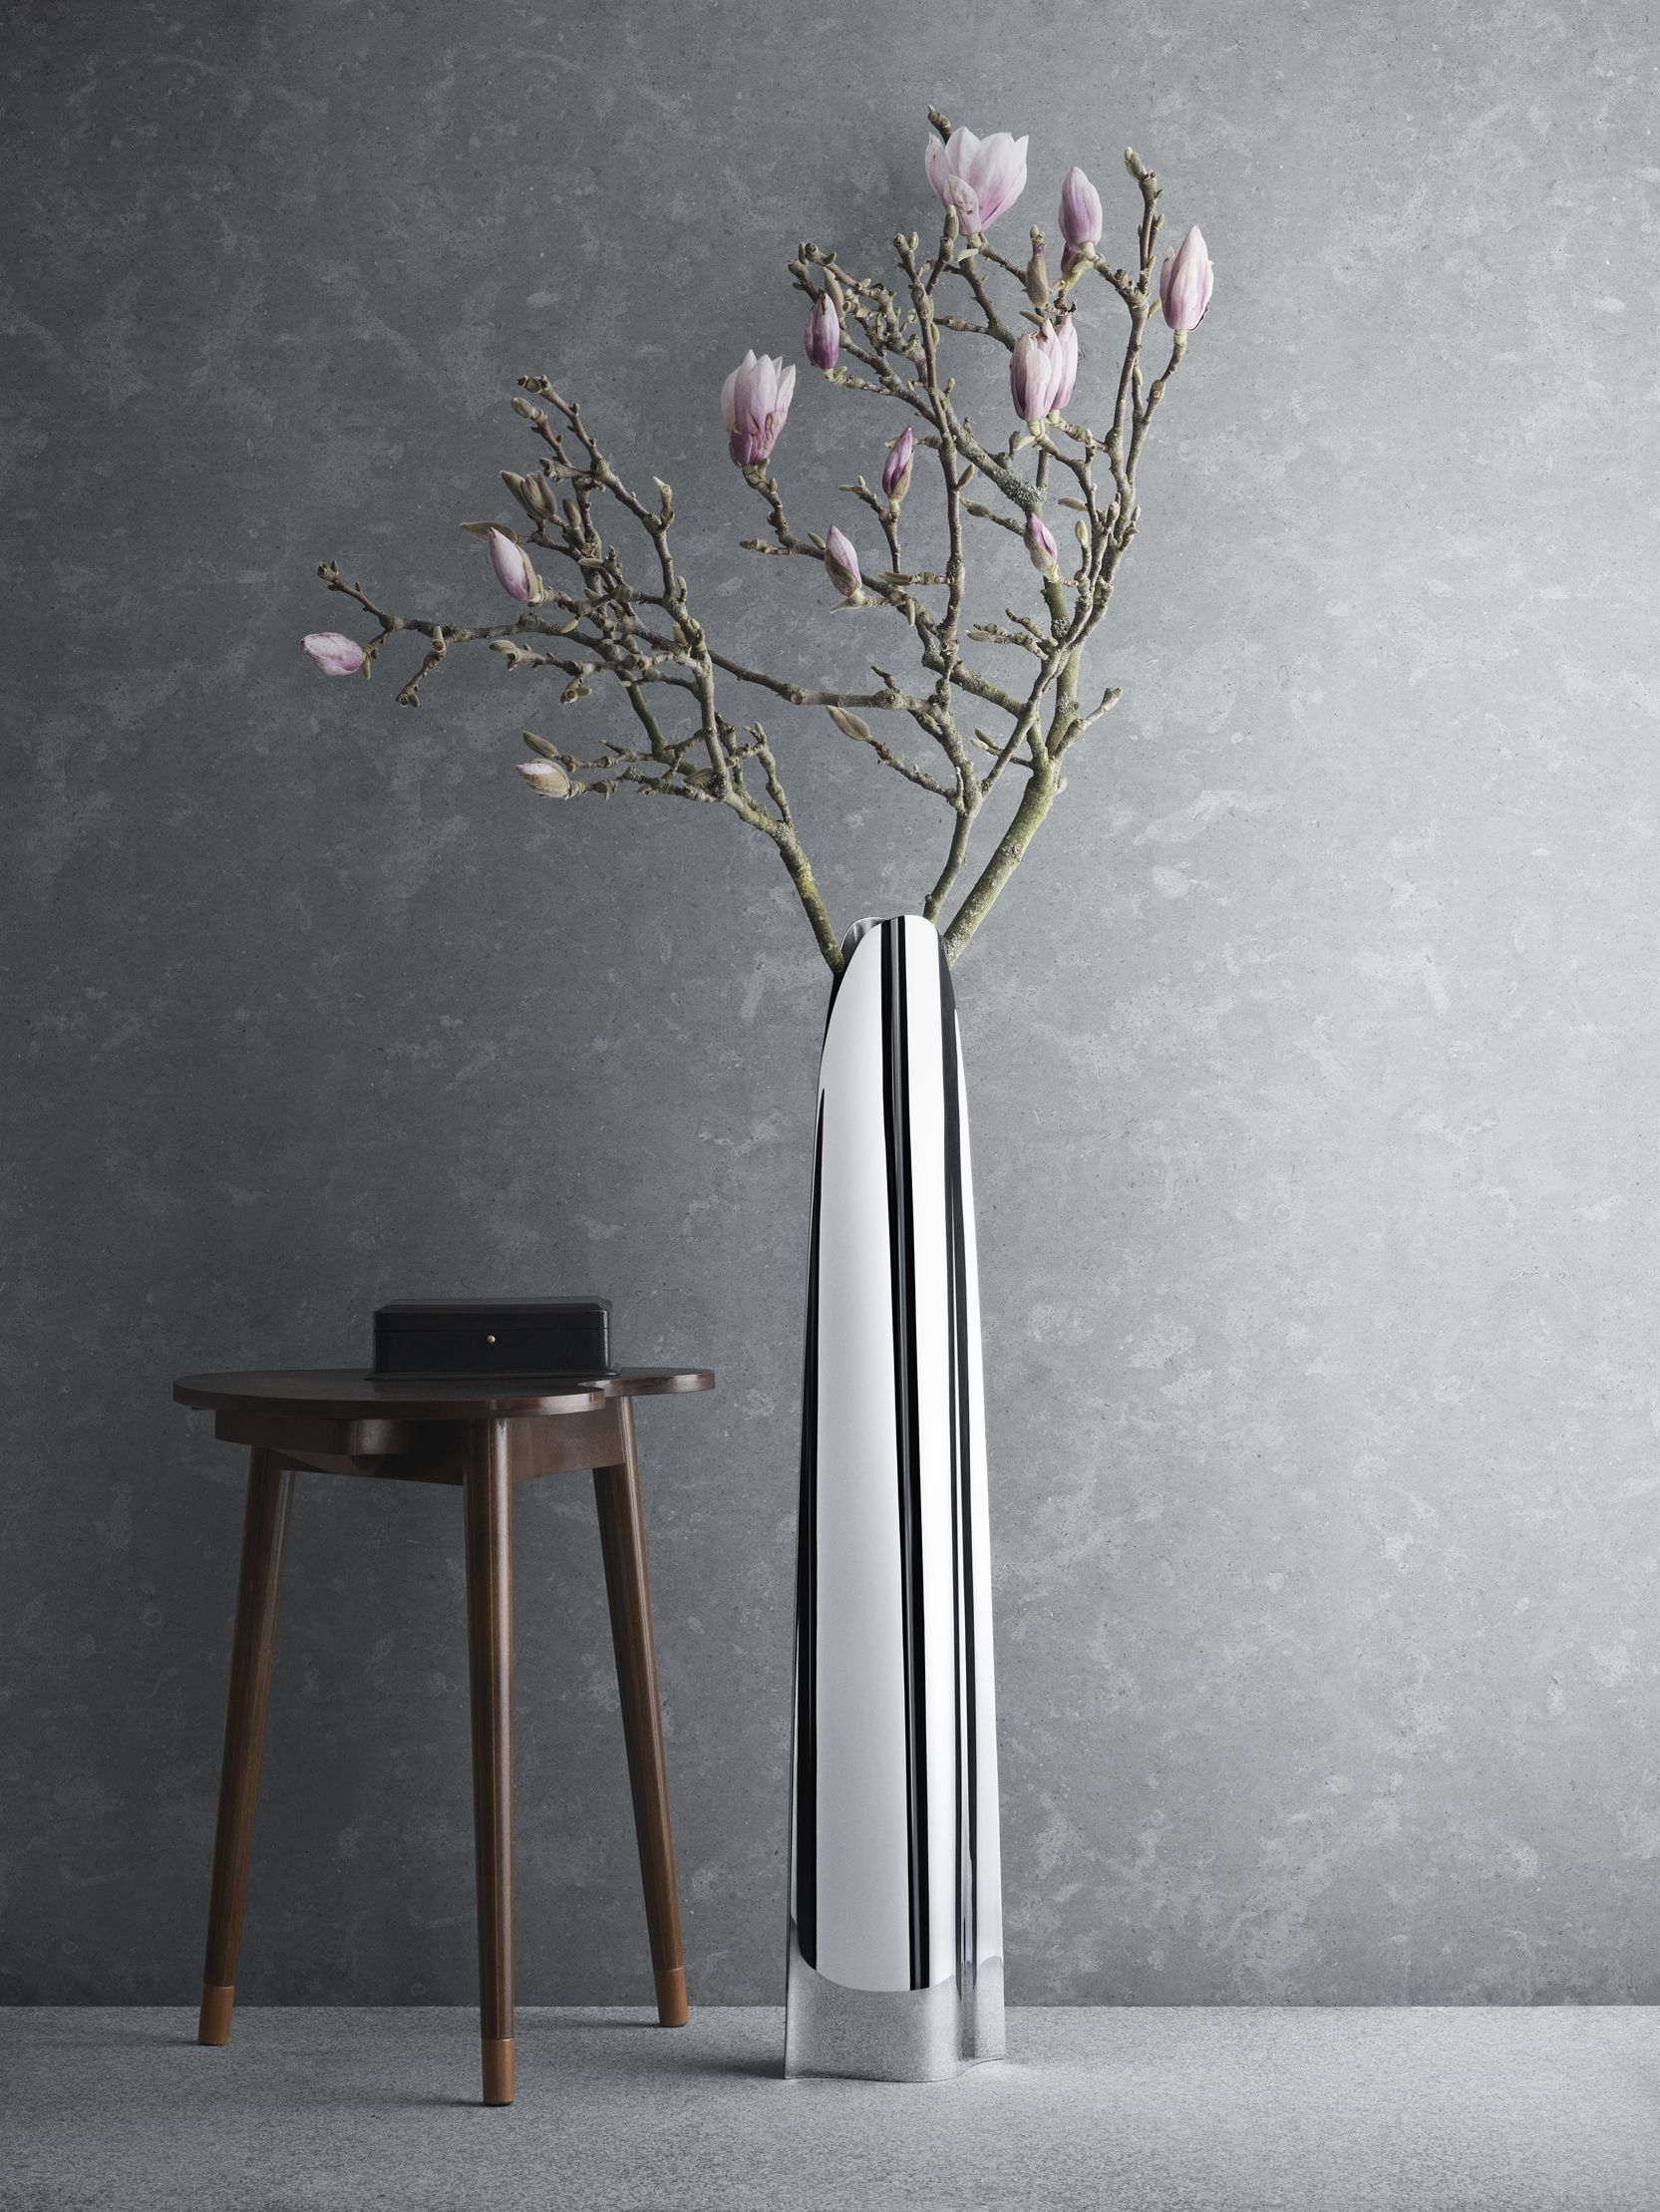 Contemporary Ideas With Decorative Flower Pots Floor Vase Decor